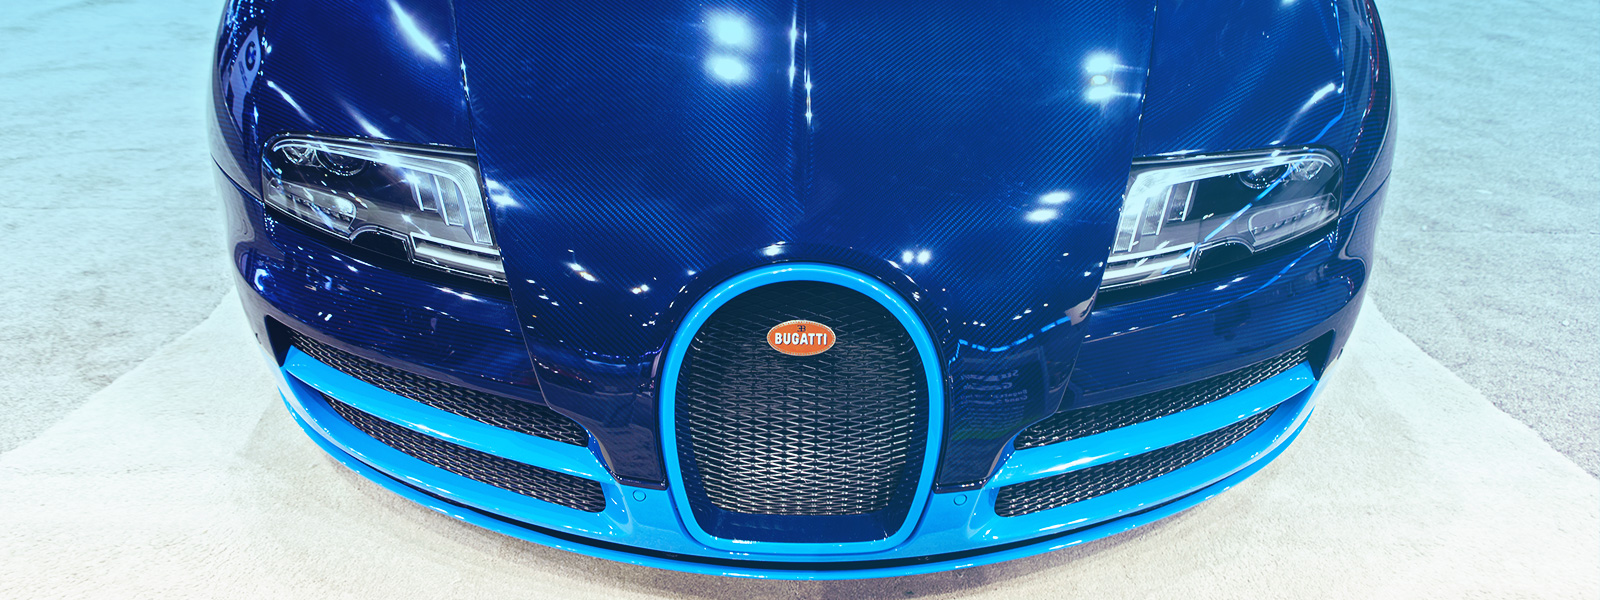 blog-ceabs-bugatti-carro-mais-rapido-mundo